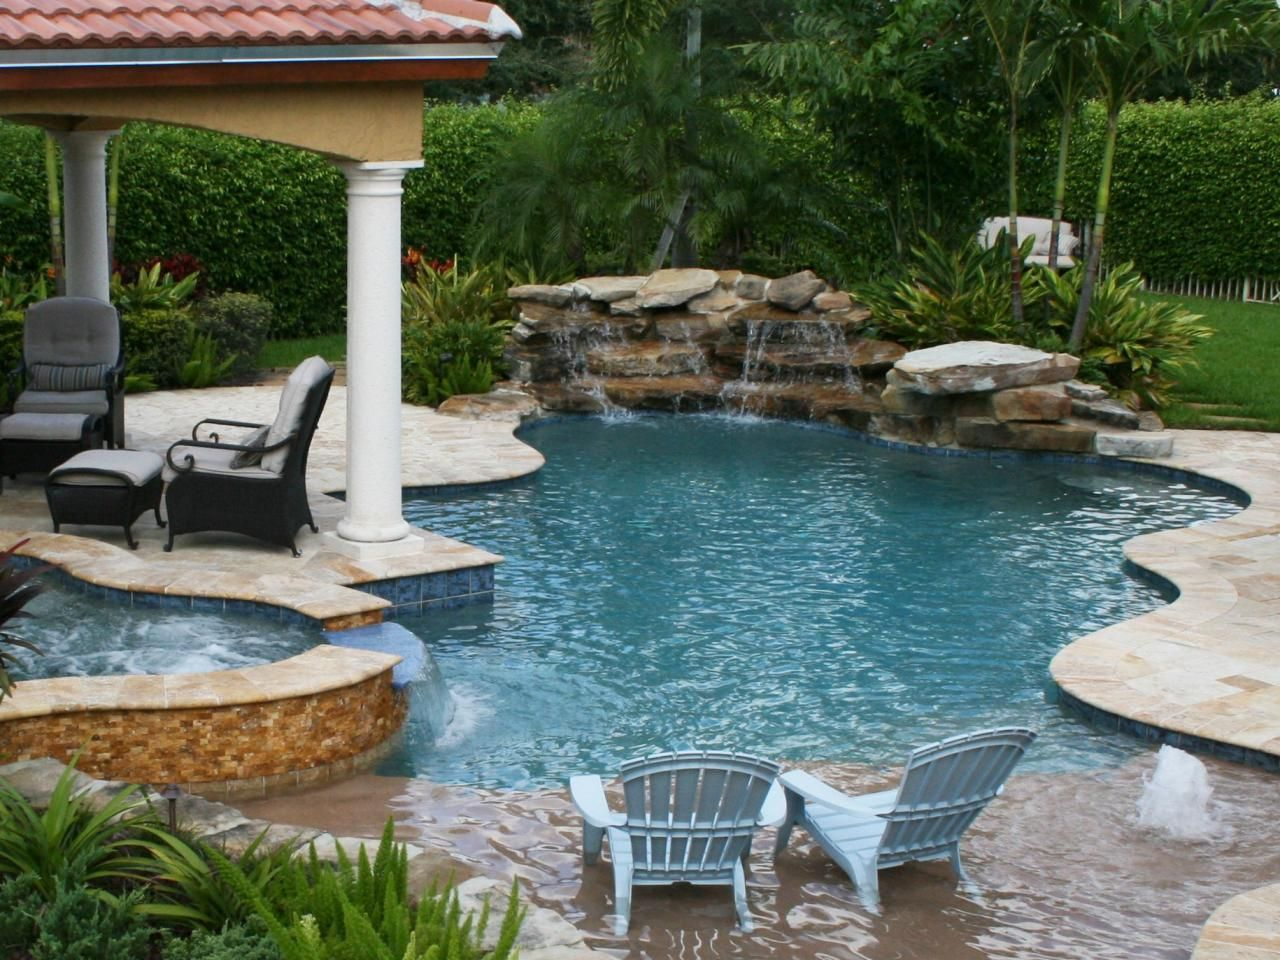 Dreamy pool design ideas pool waterfall ideas for Pool design ideas